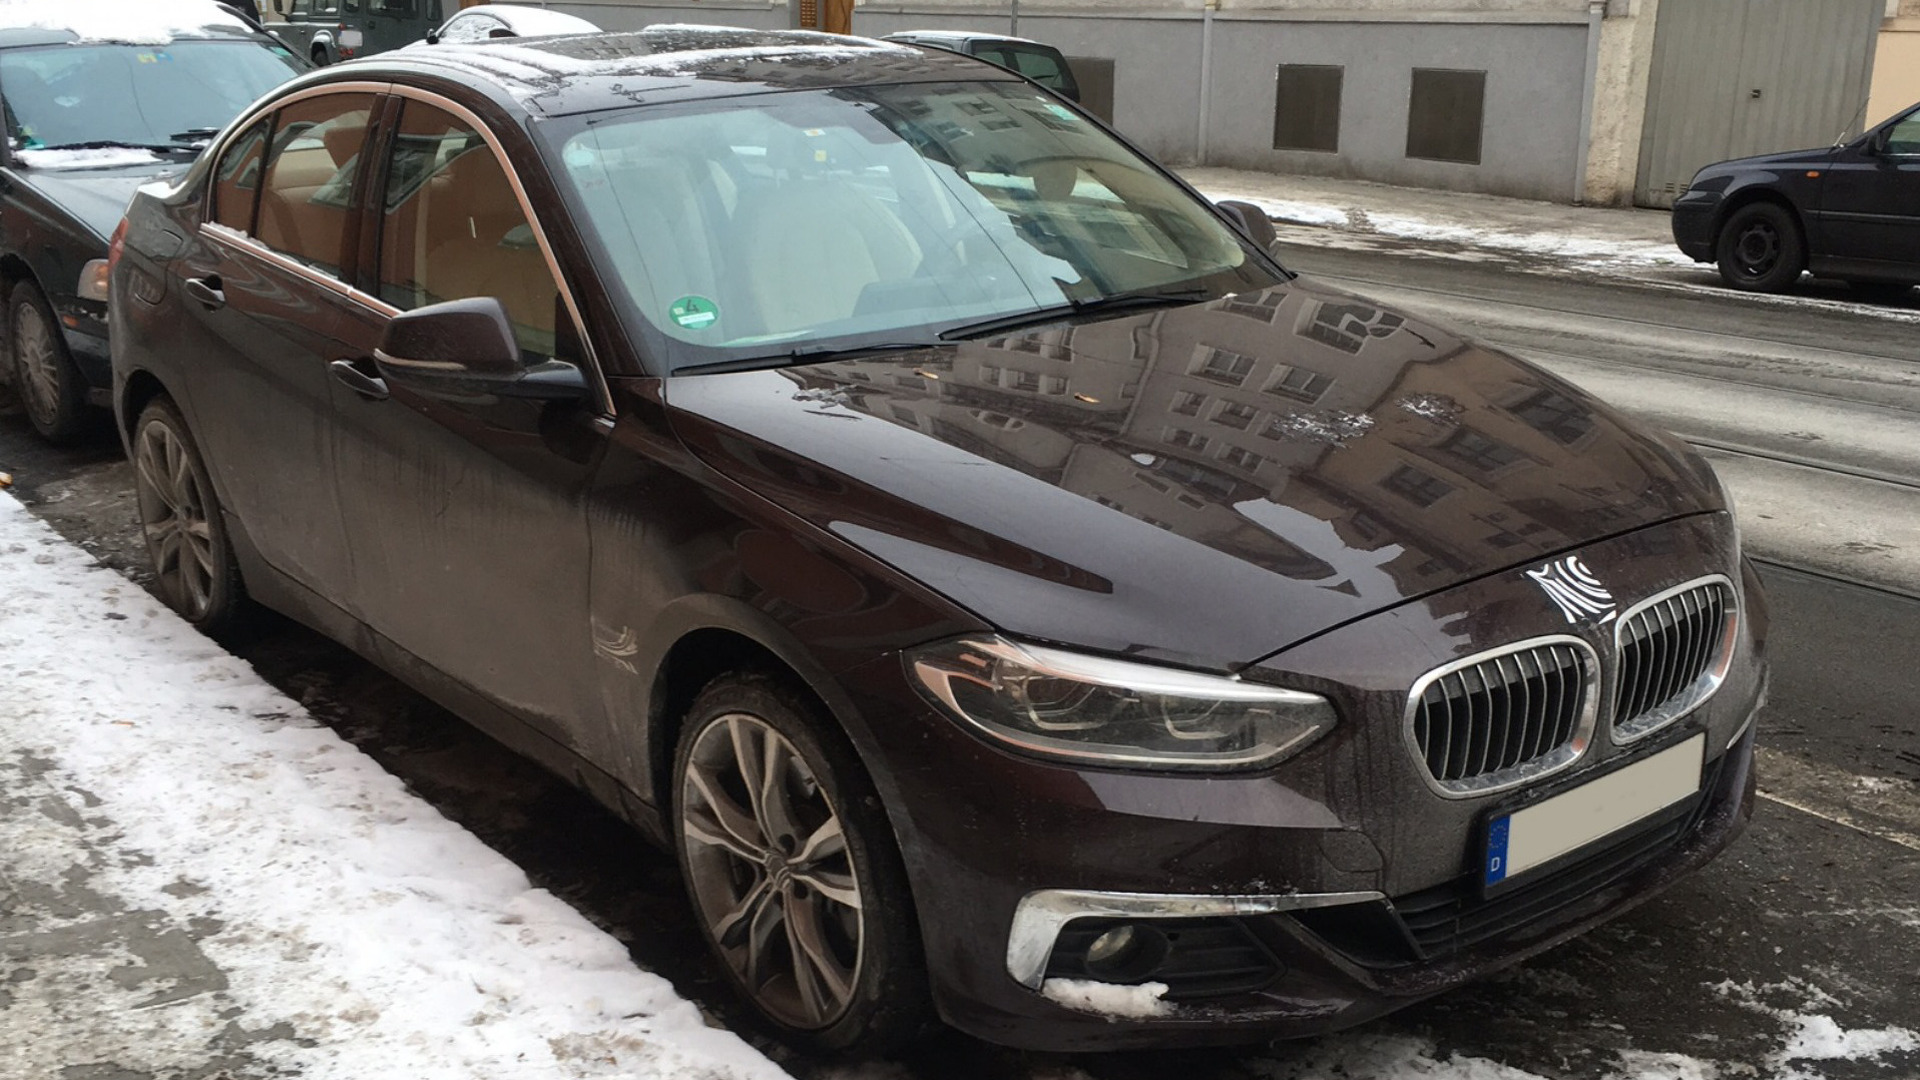 Bmw 1 Series Sedan Spotted On Street In Munich Coming To